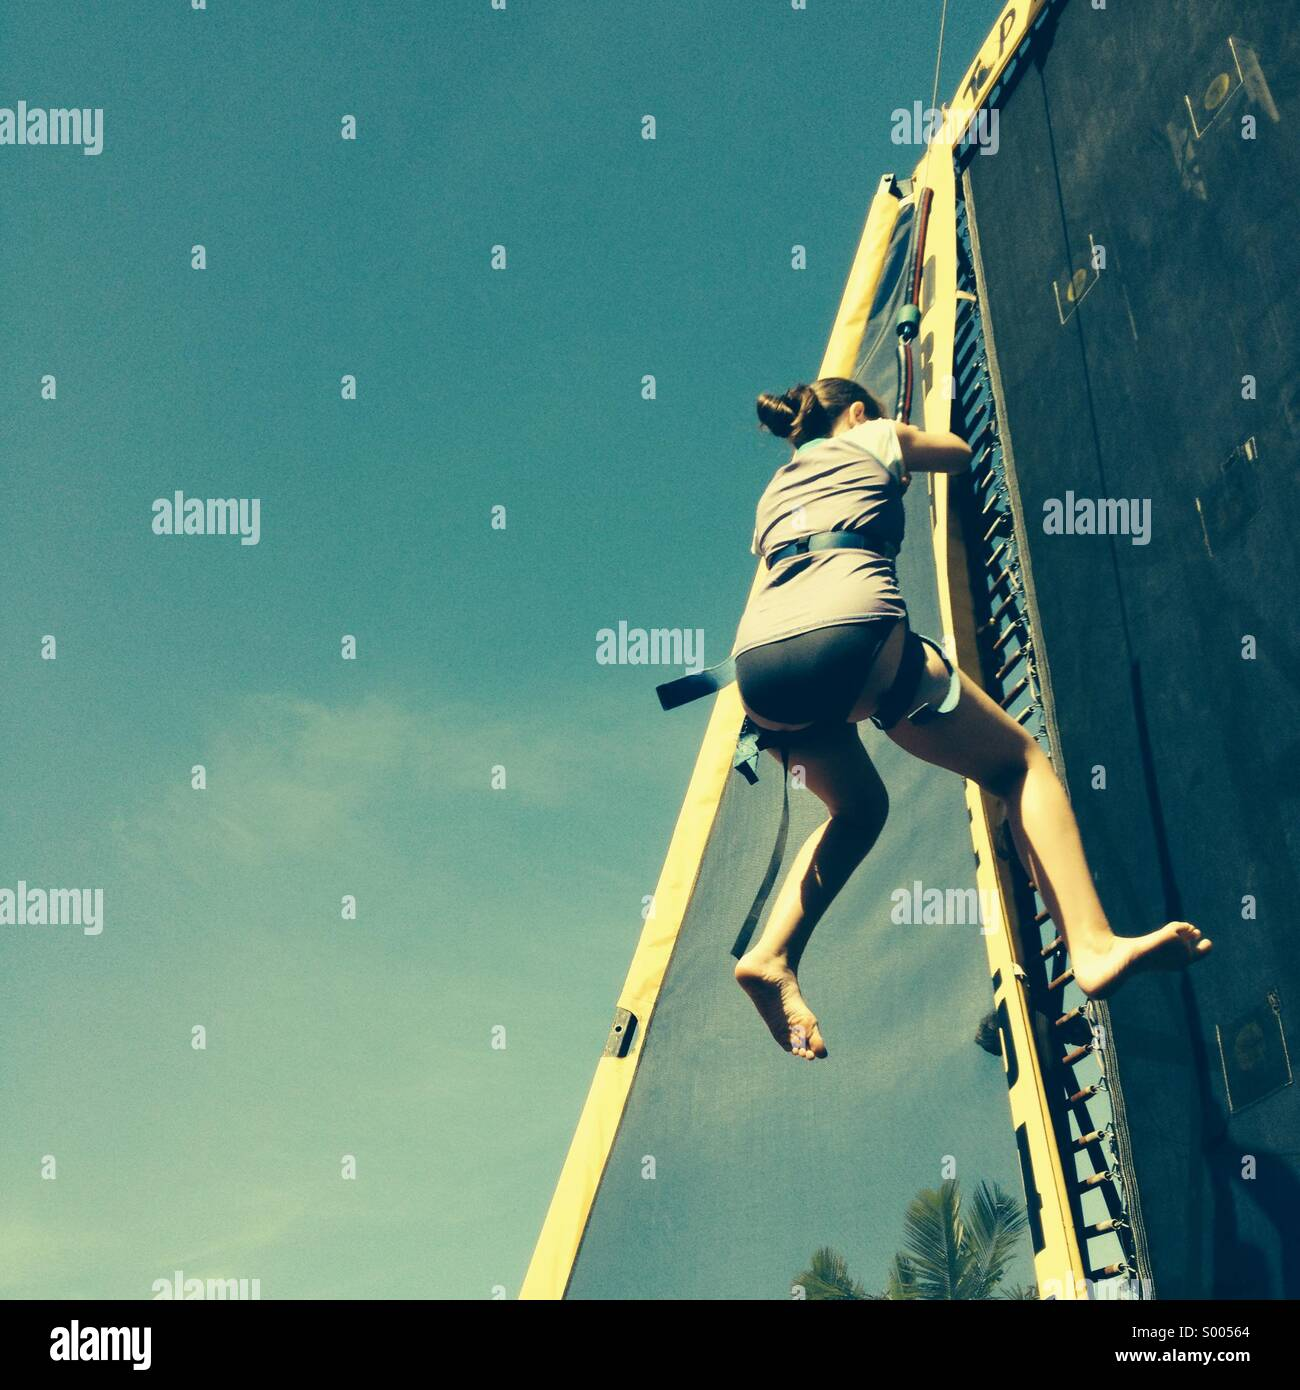 Girl climbing on an abseiling wall. - Stock Image